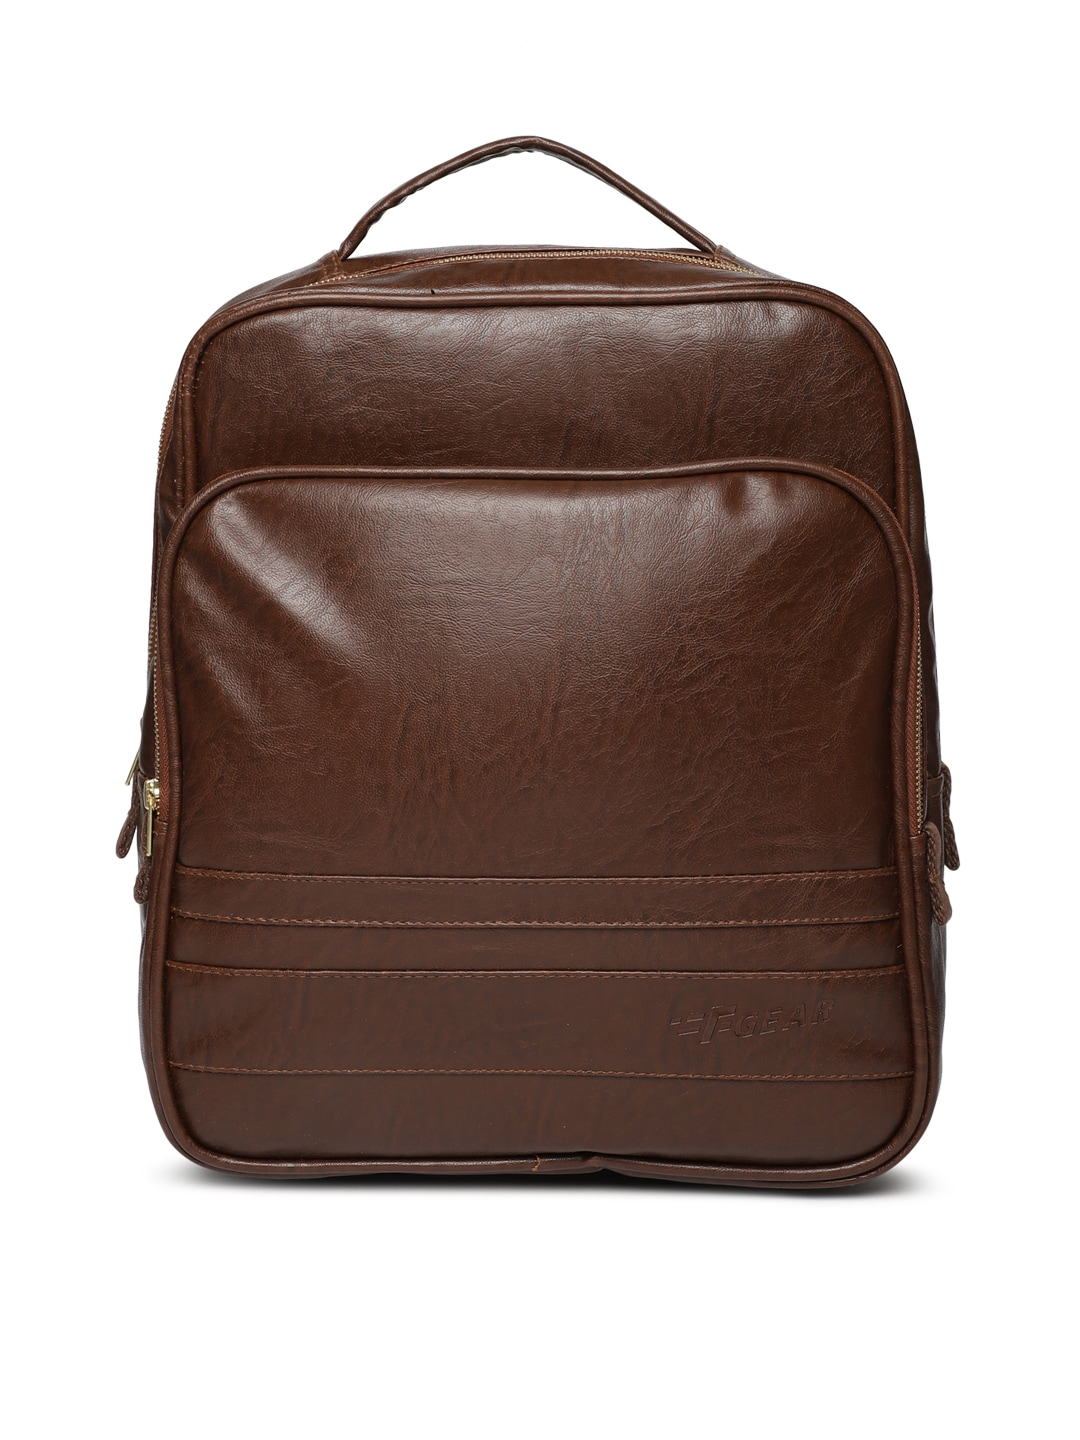 F Gear Backpacks - Buy F Gear Backpacks Online in India 120615f392dc7